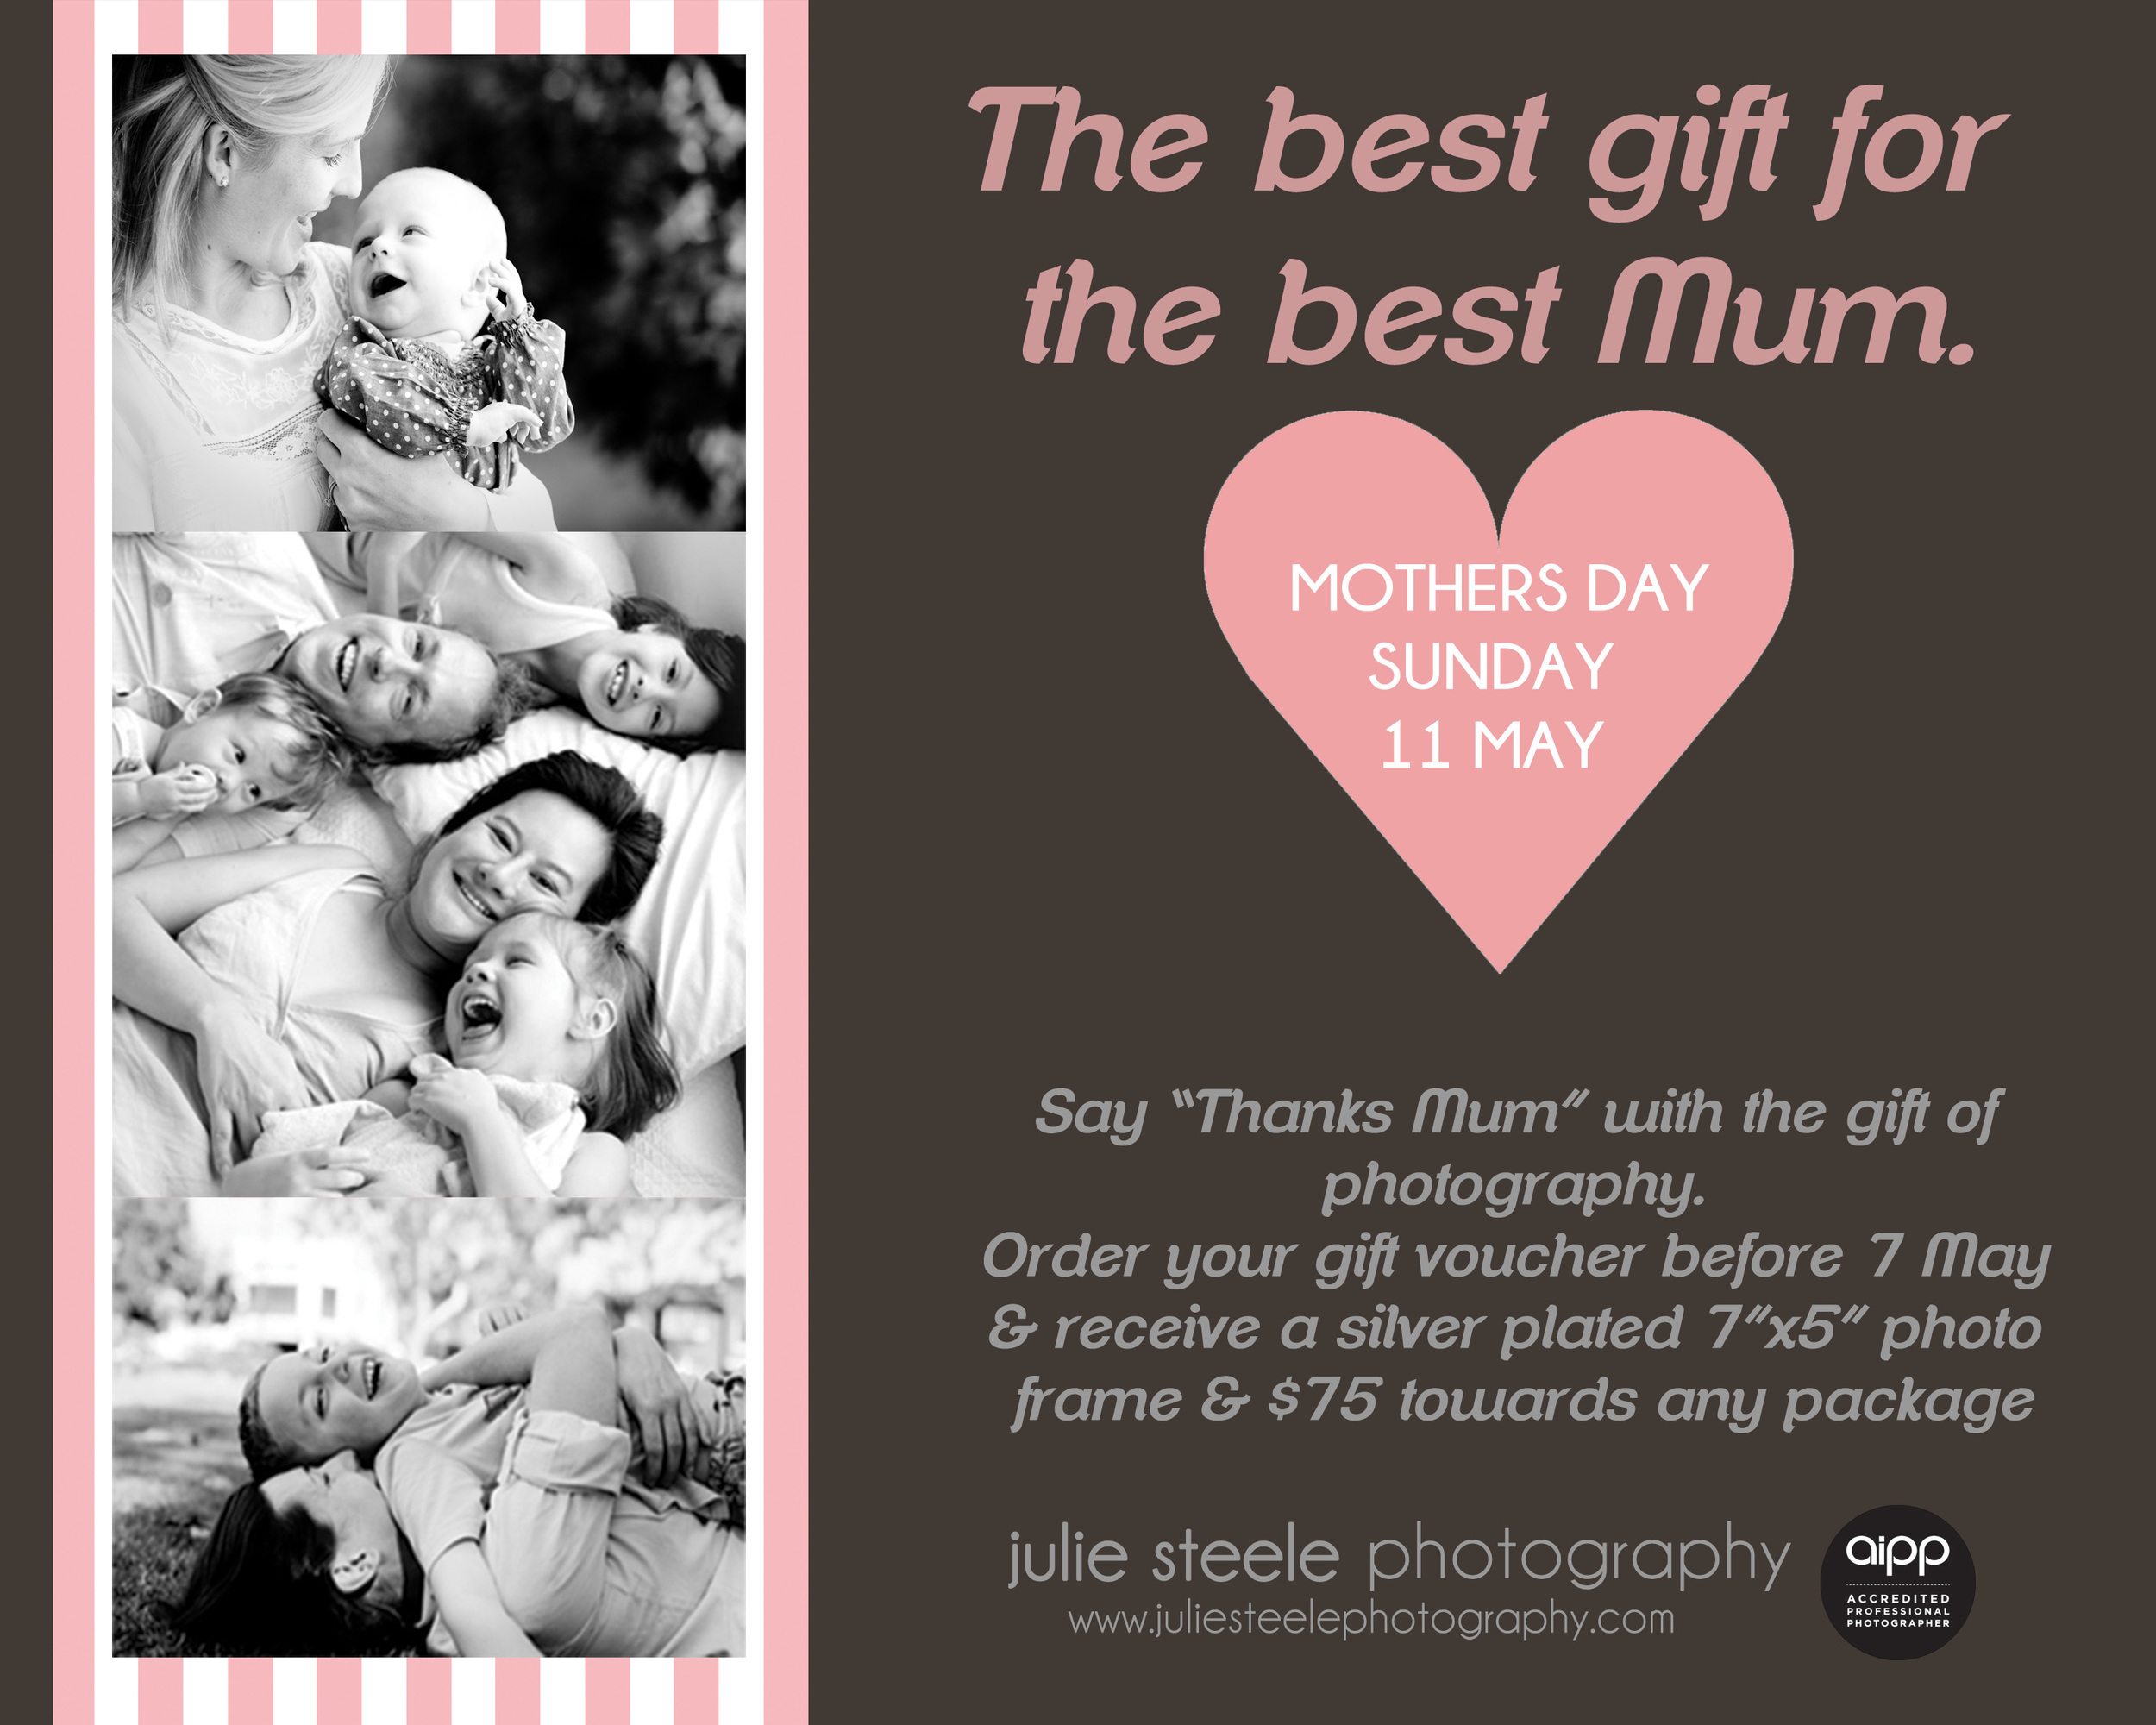 Mother's Day photography gift voucher